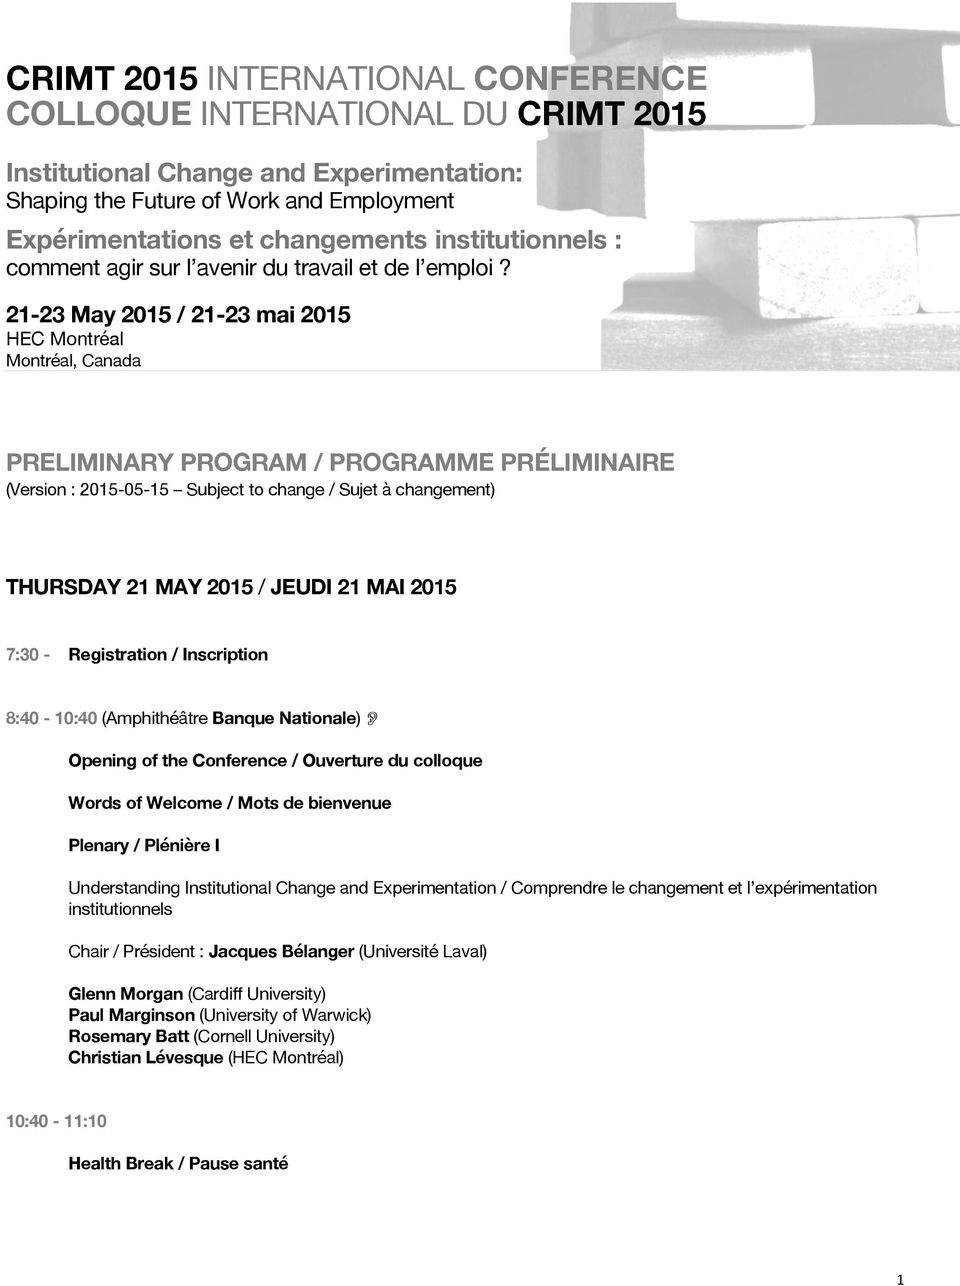 21-23 May 2015 / 21-23 mai 2015 HEC Montréal Montréal, Canada PRELIMINARY PROGRAM / PROGRAMME PRÉLIMINAIRE (Version : 2015-05-15 Subject to change / Sujet à changement) THURSDAY 21 MAY 2015 / JEUDI